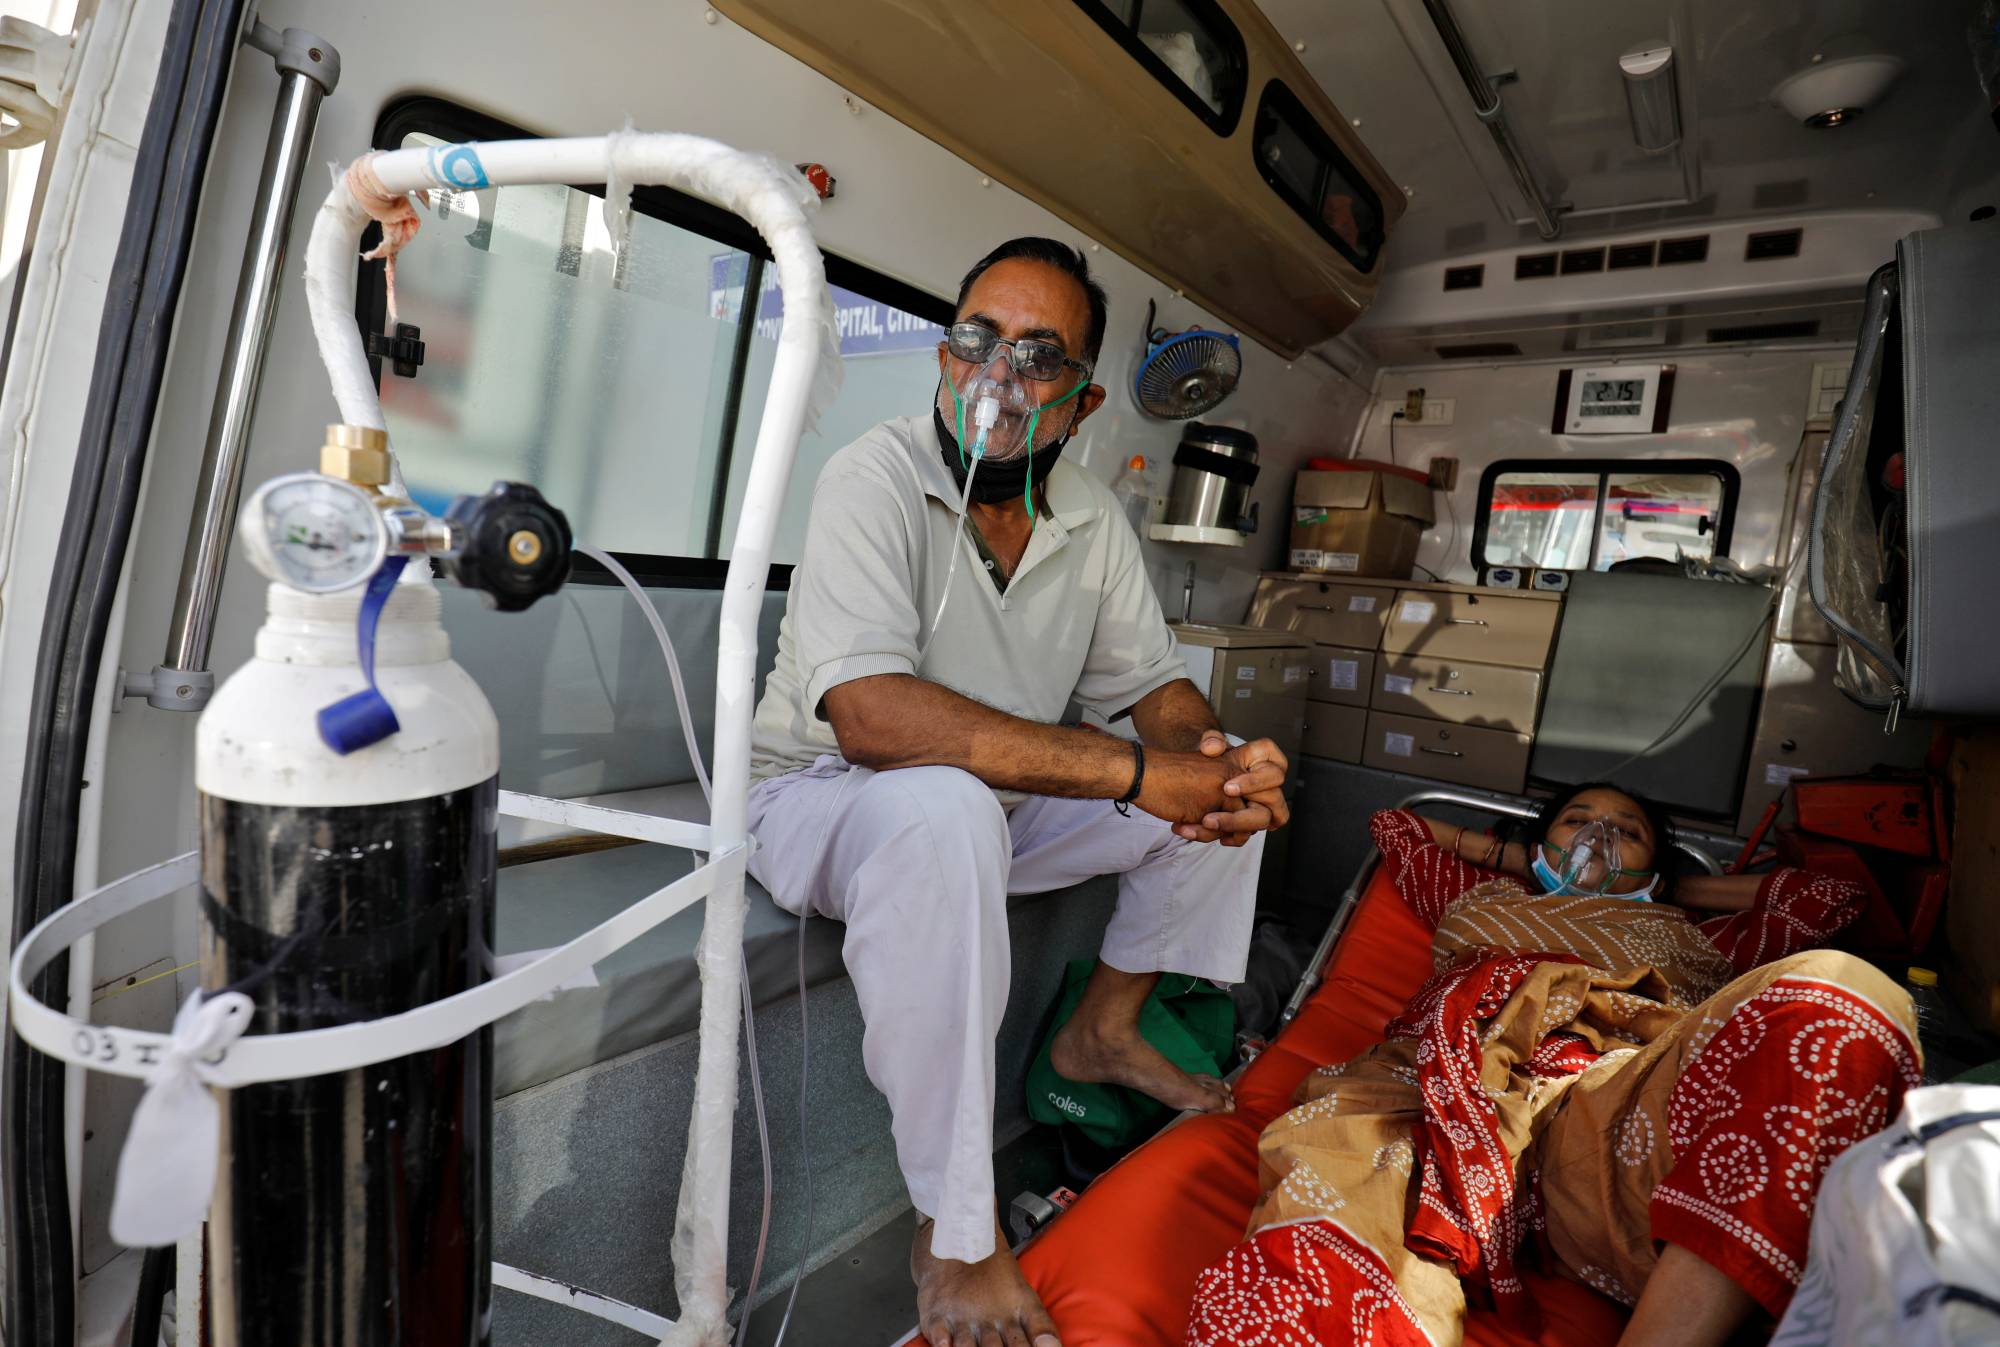 Patients in an ambulance wait to enter a COVID-19 hospital for treatment in Ahmedabad, India, on Monday.    REUTERS